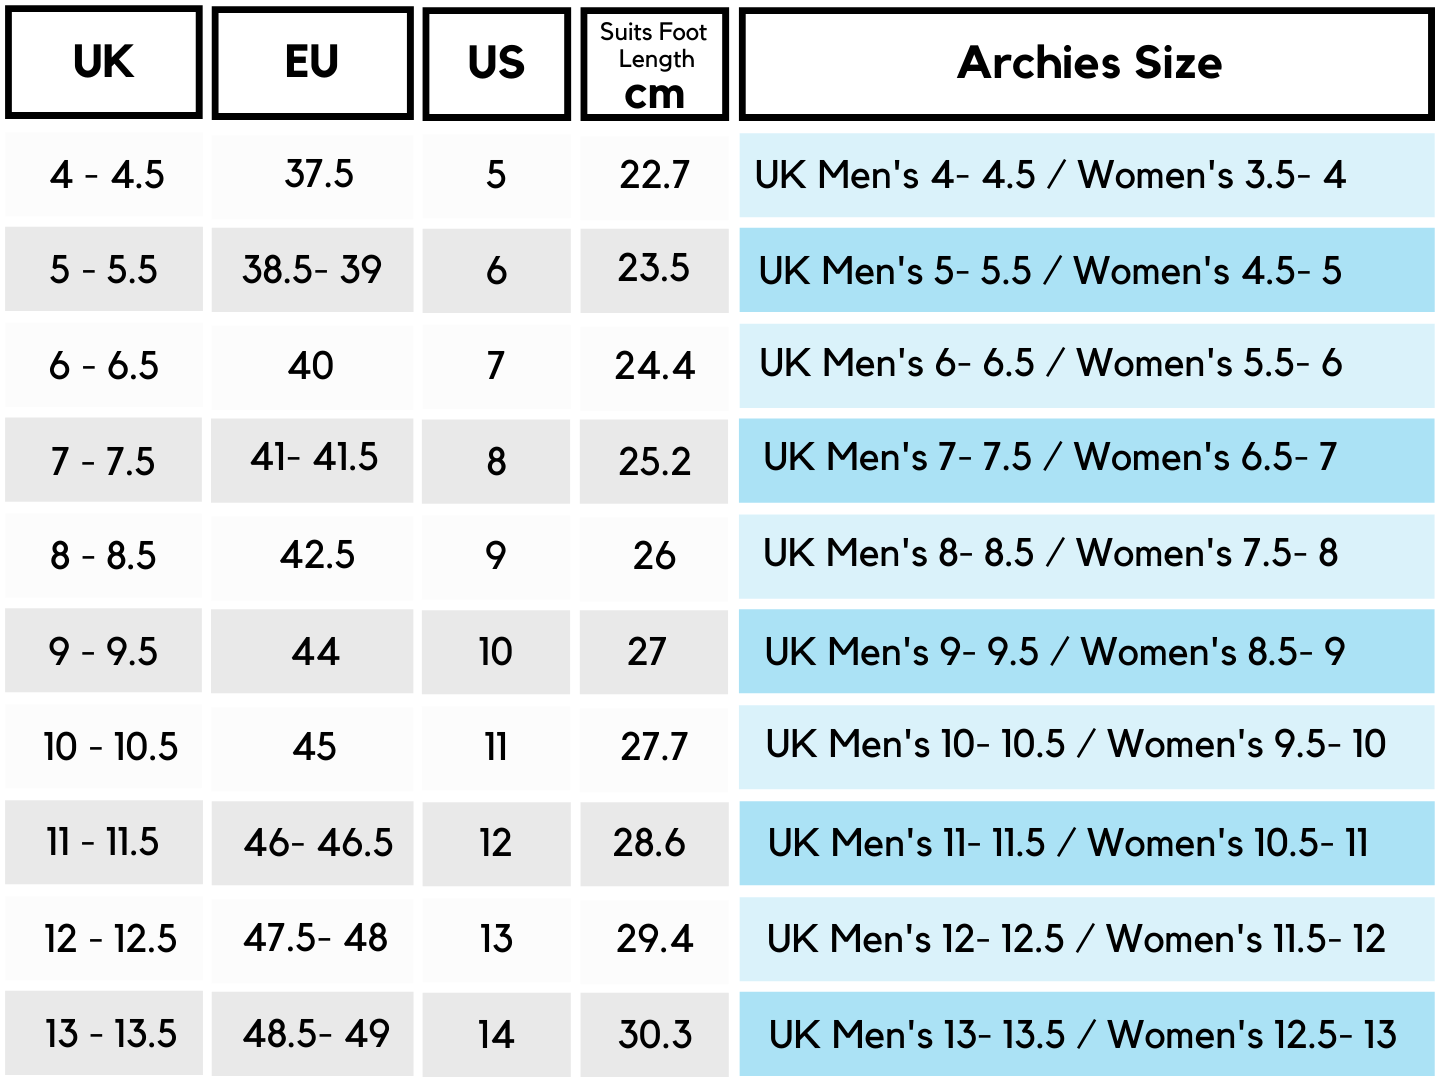 UK Archies Men's Size Chart